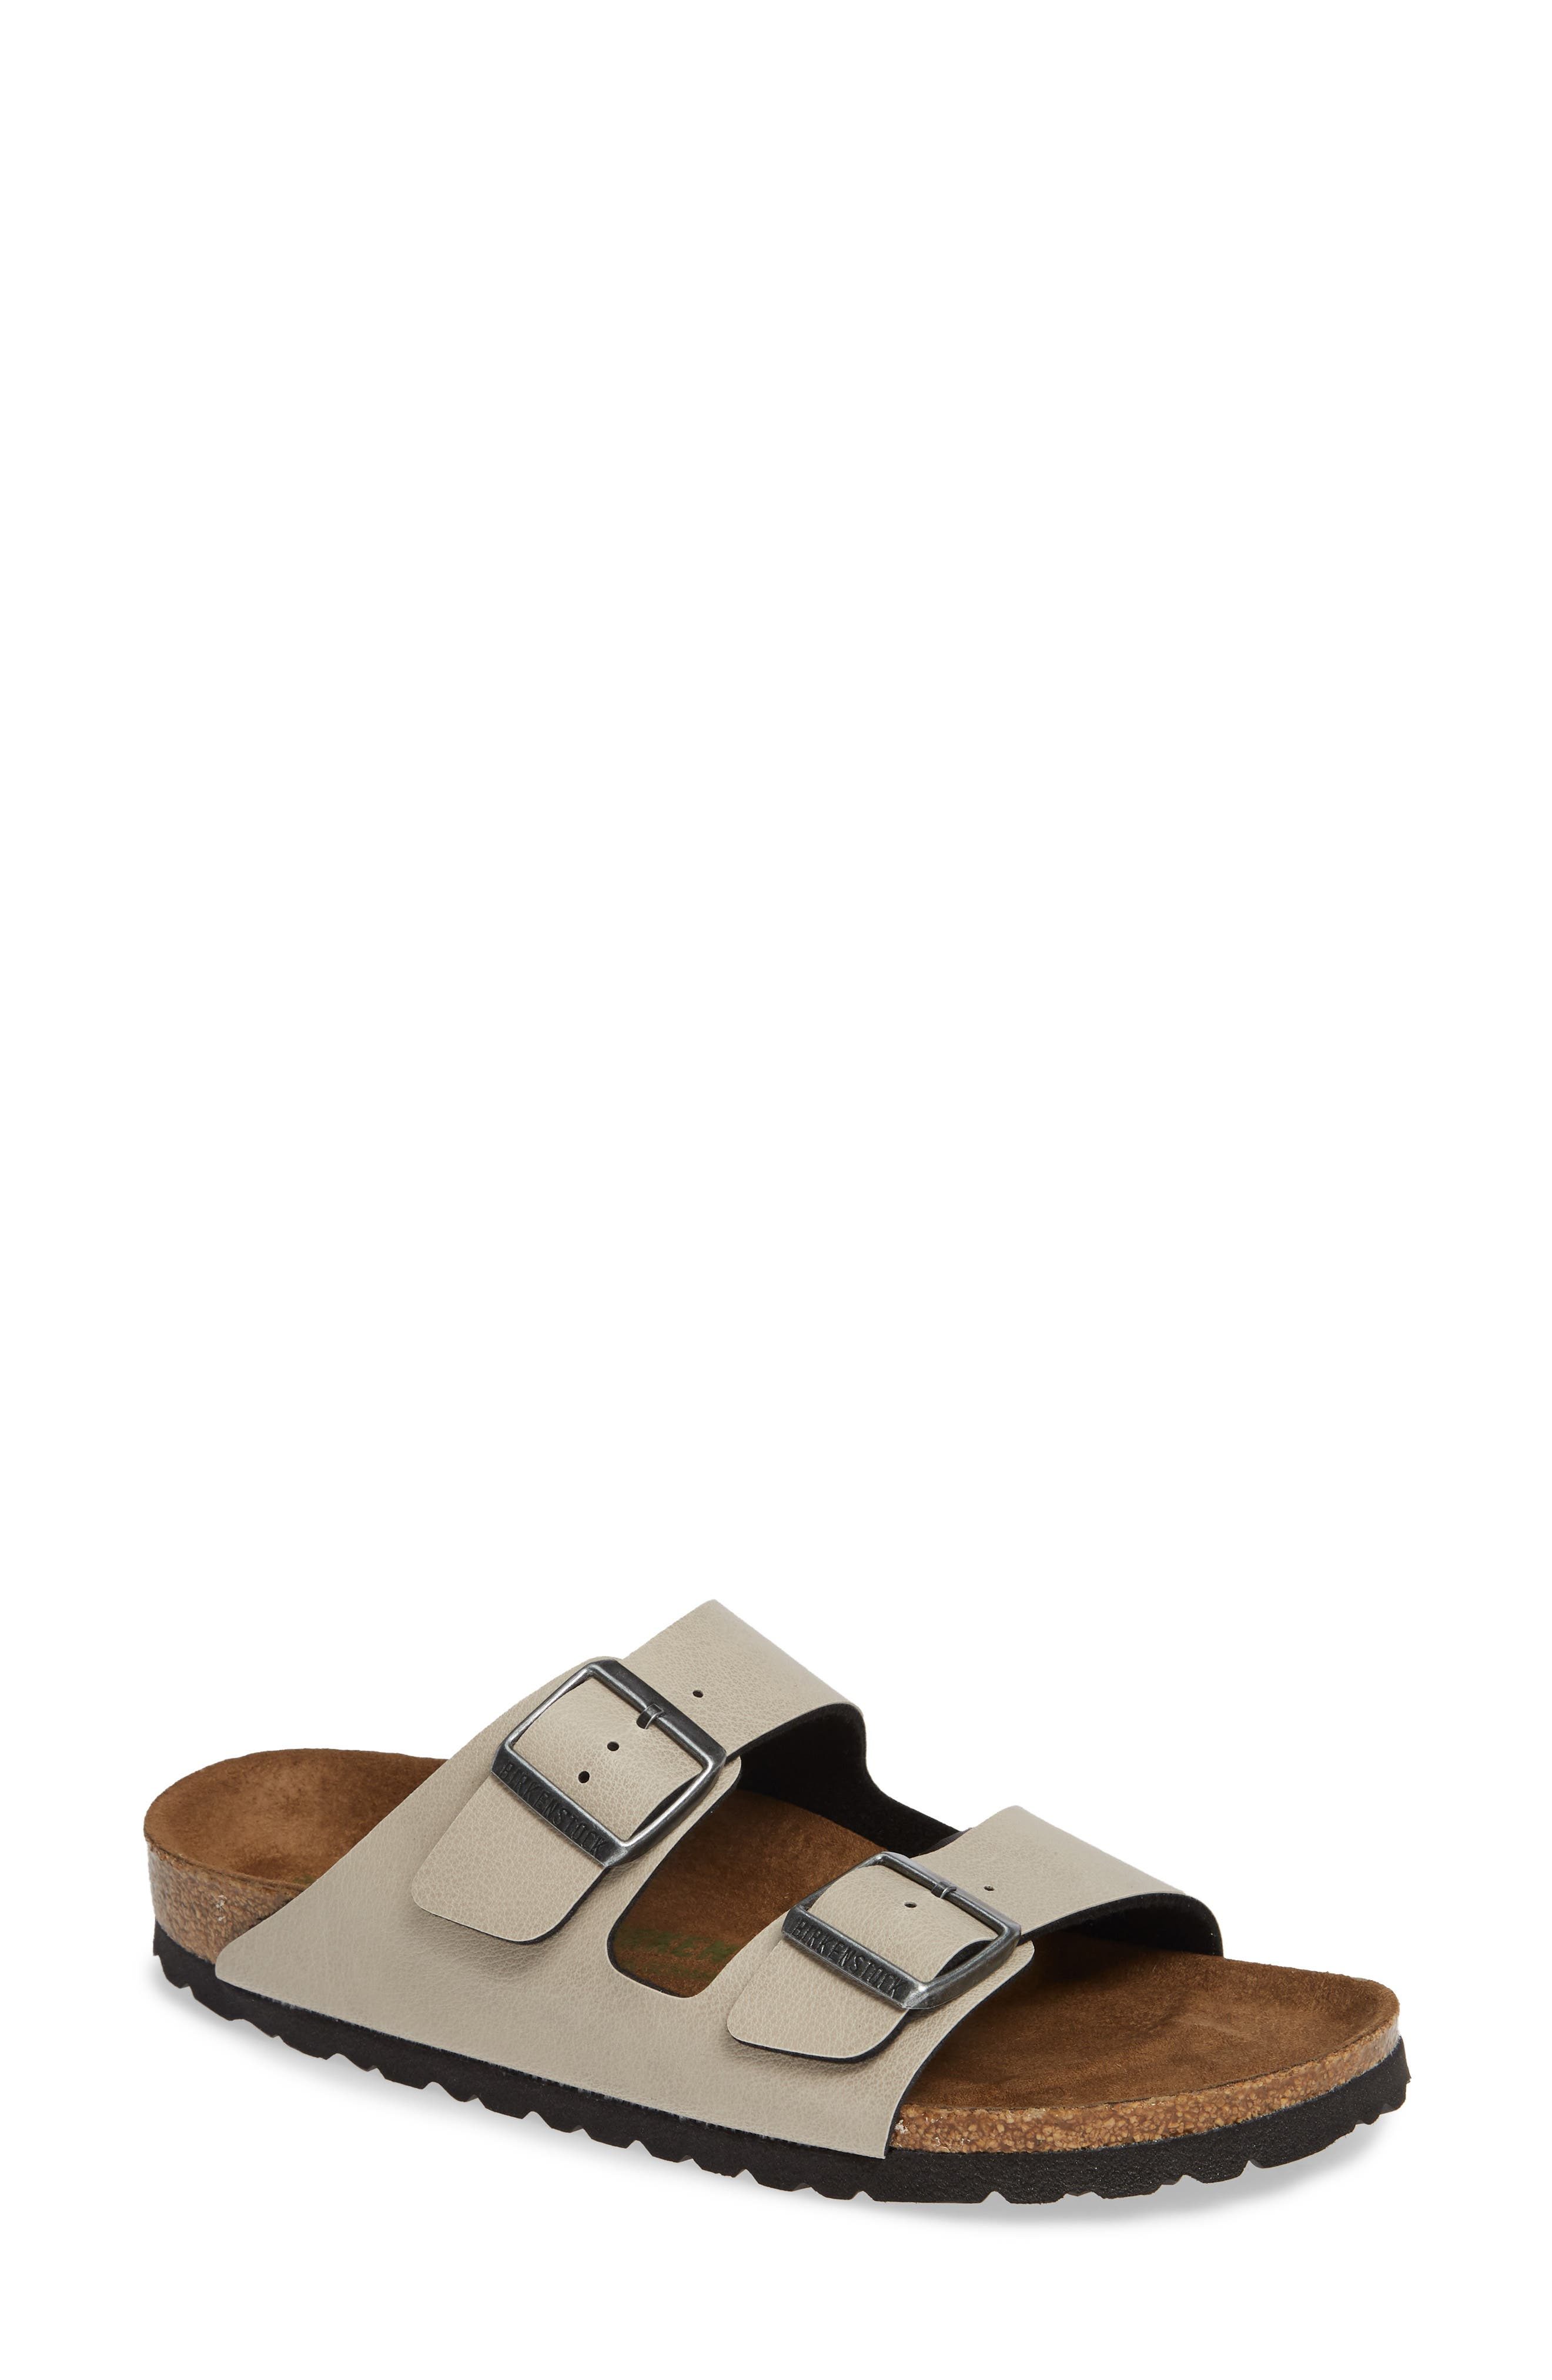 Arizona Birko-Flor<sup>™</sup> Slide Sandal,                             Main thumbnail 1, color,                             PULL UP STONE FAUX LEATHER